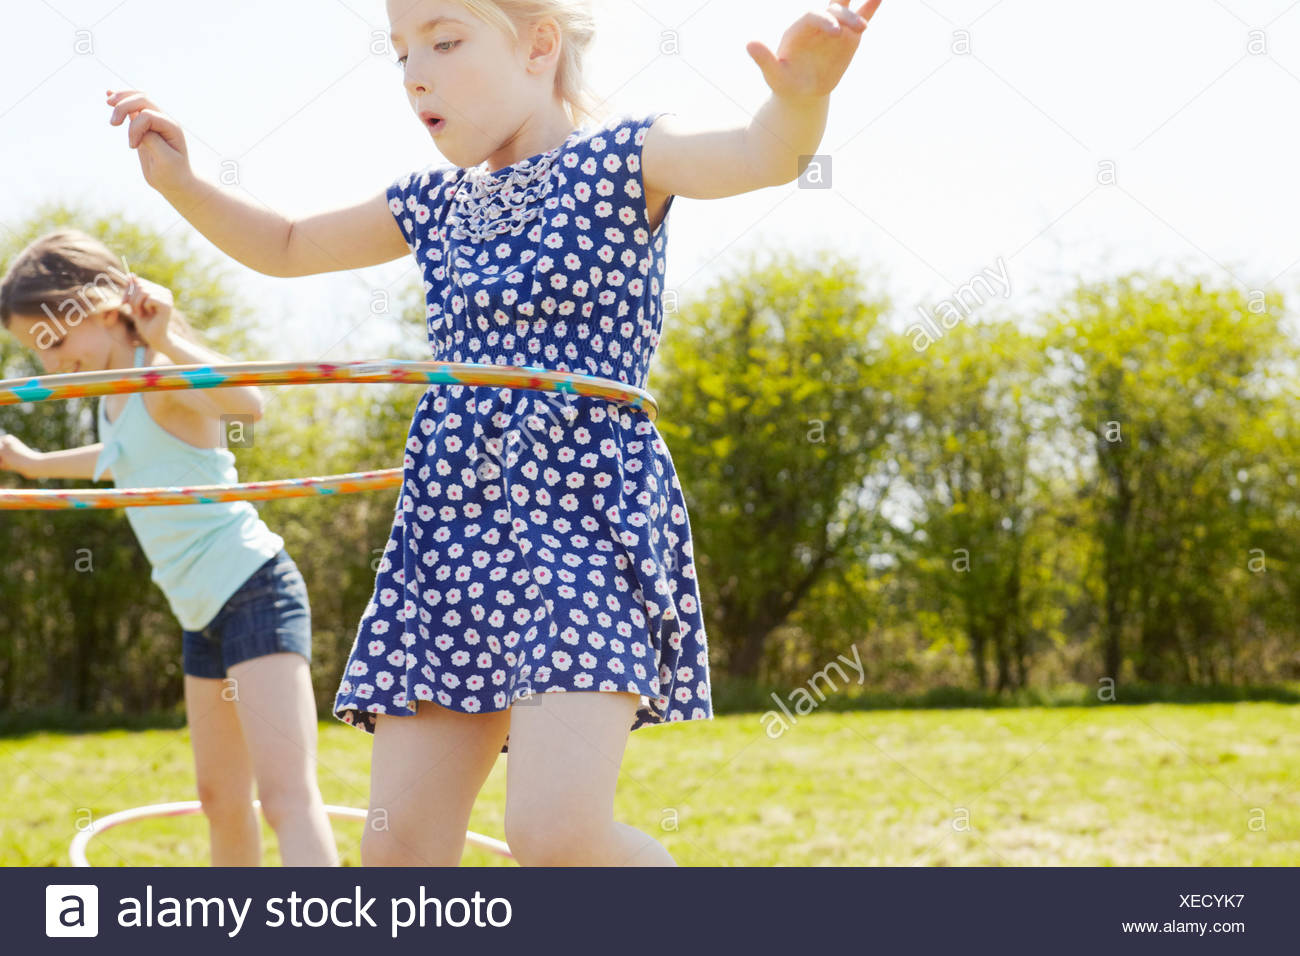 Low angle view of two girls playing with plastic hoops Stock Photo